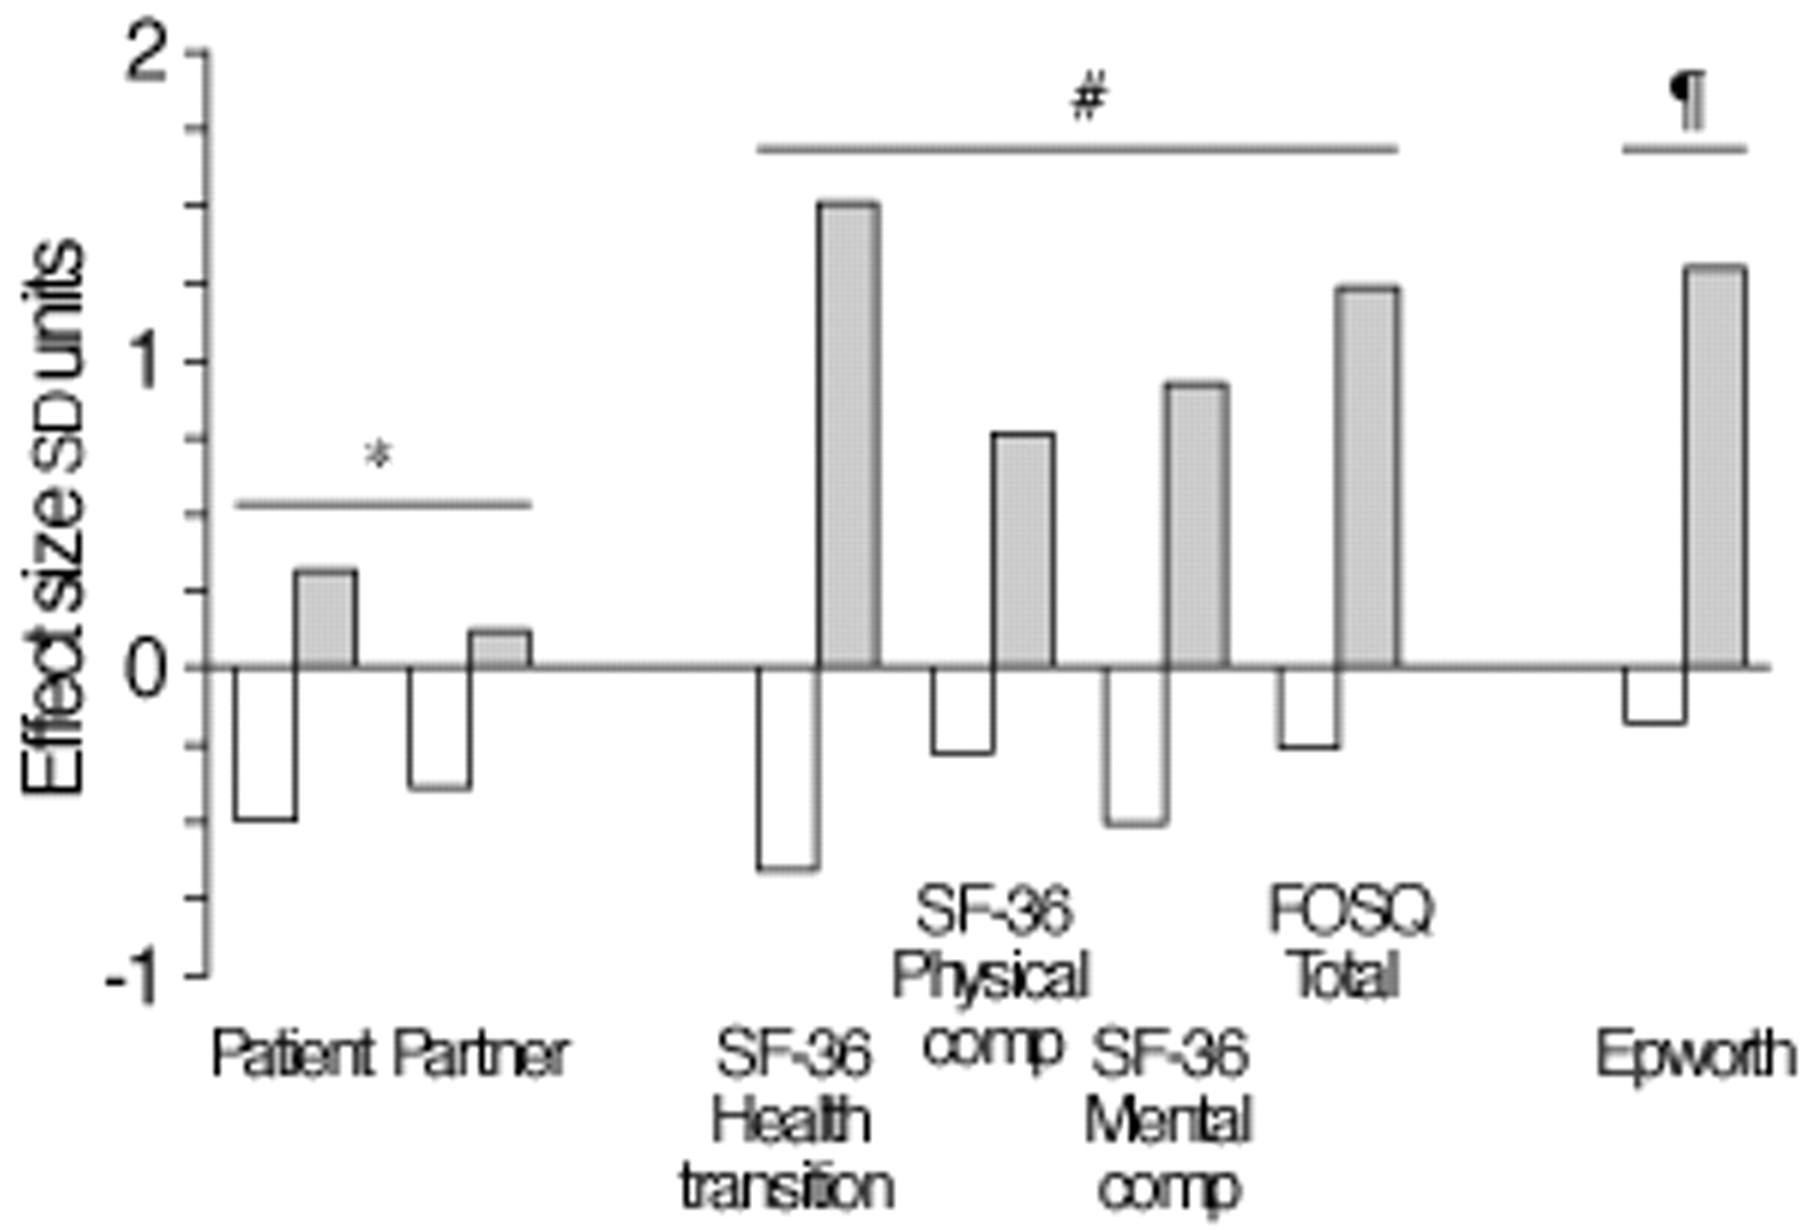 Controlled, prospective trial of psychosocial function